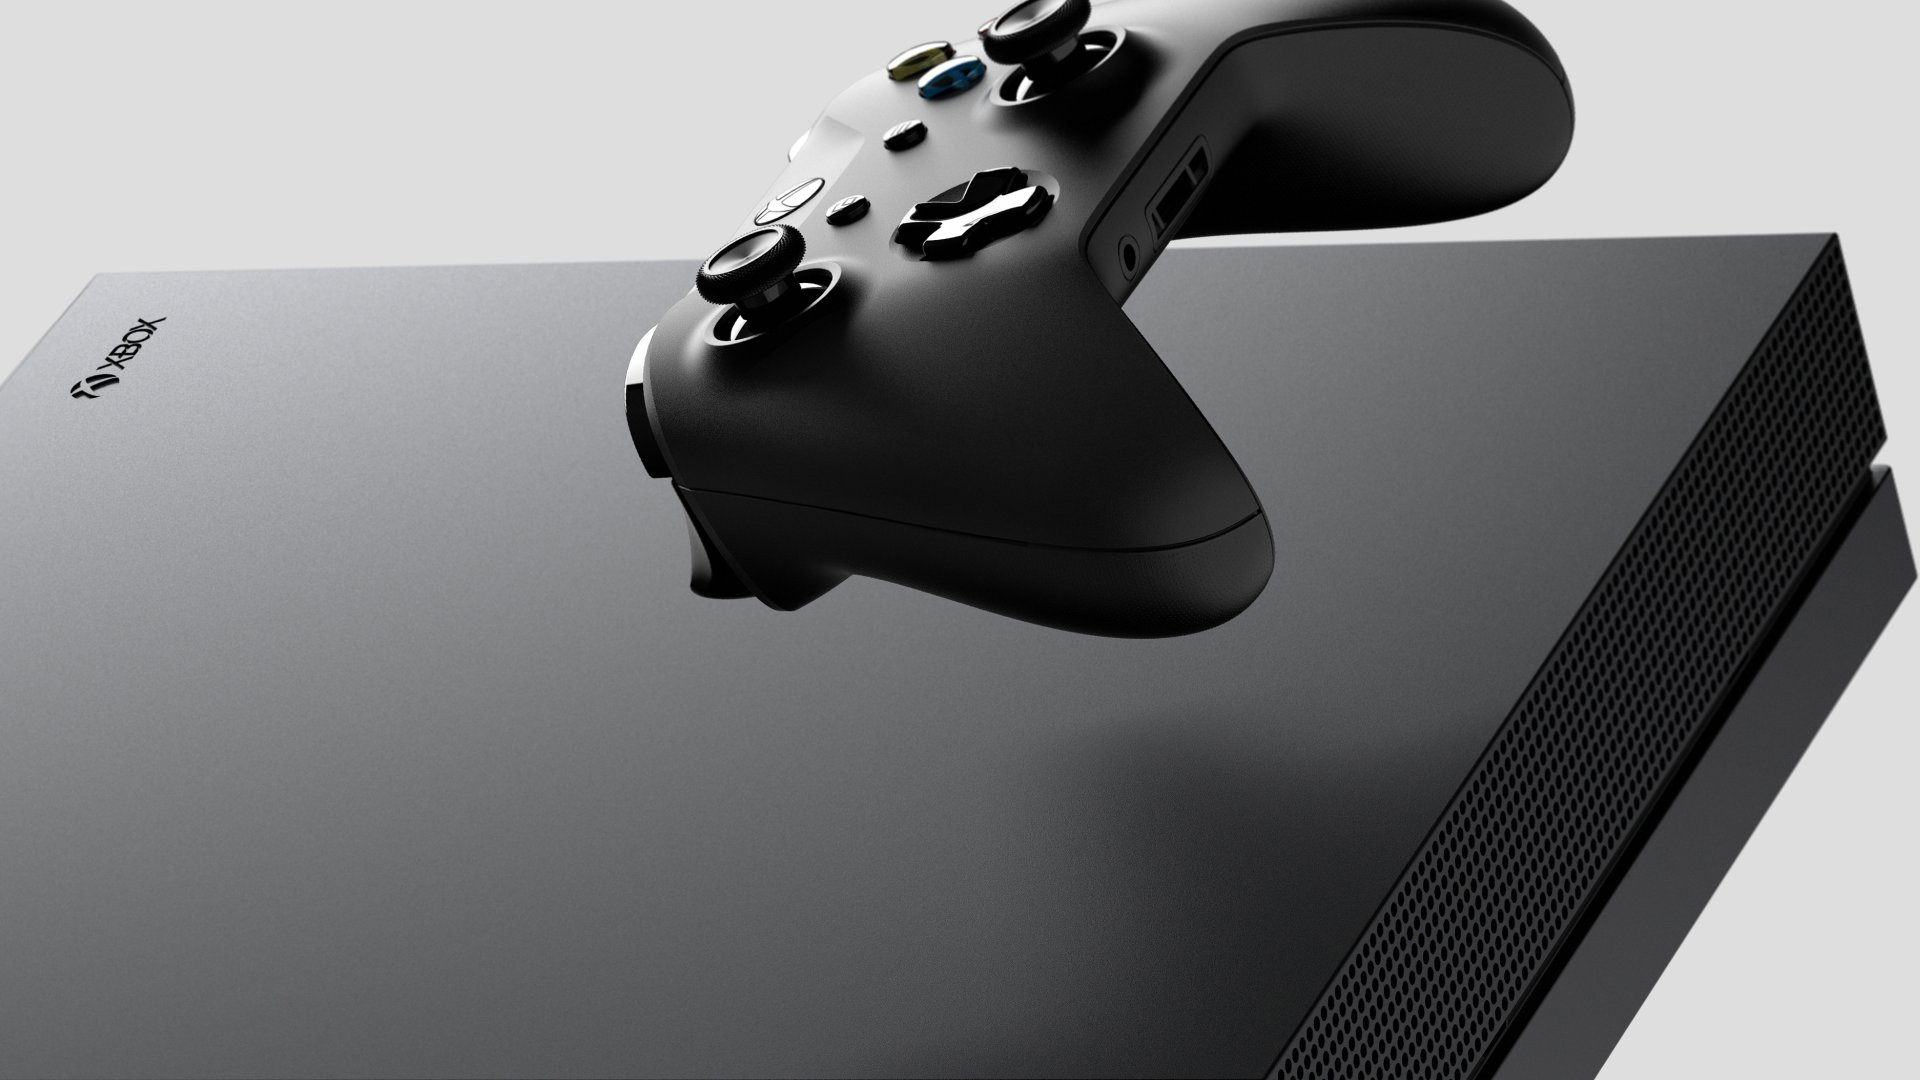 10 essential Xbox One setup tips that all owners need to know